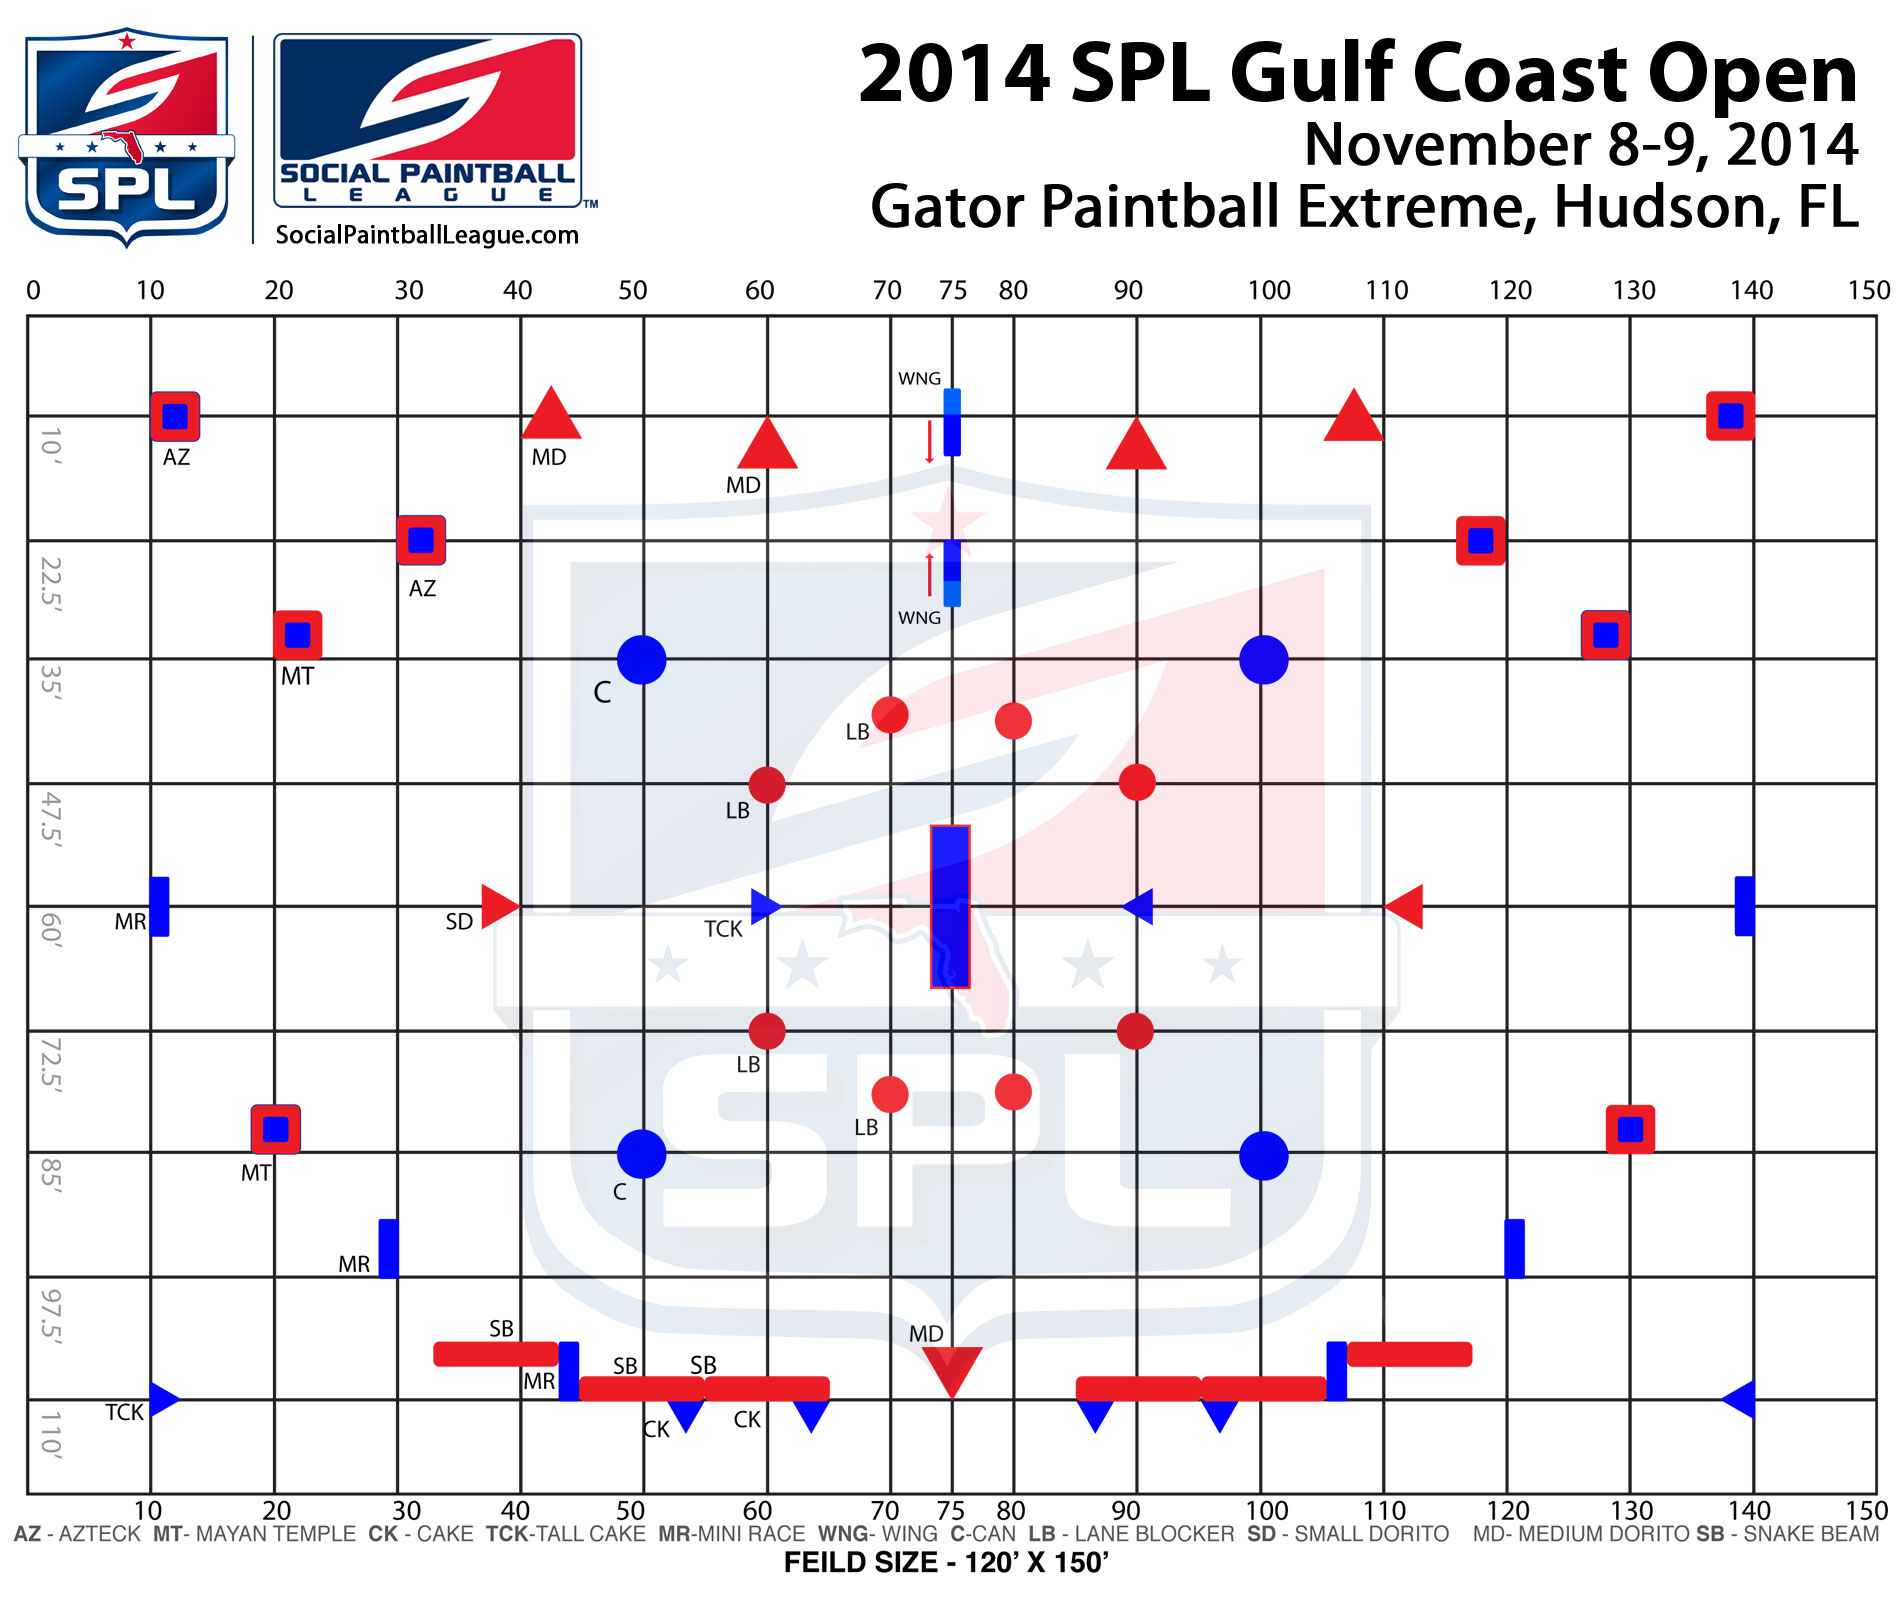 2014 SPL Gulf Coast Open Layout Released